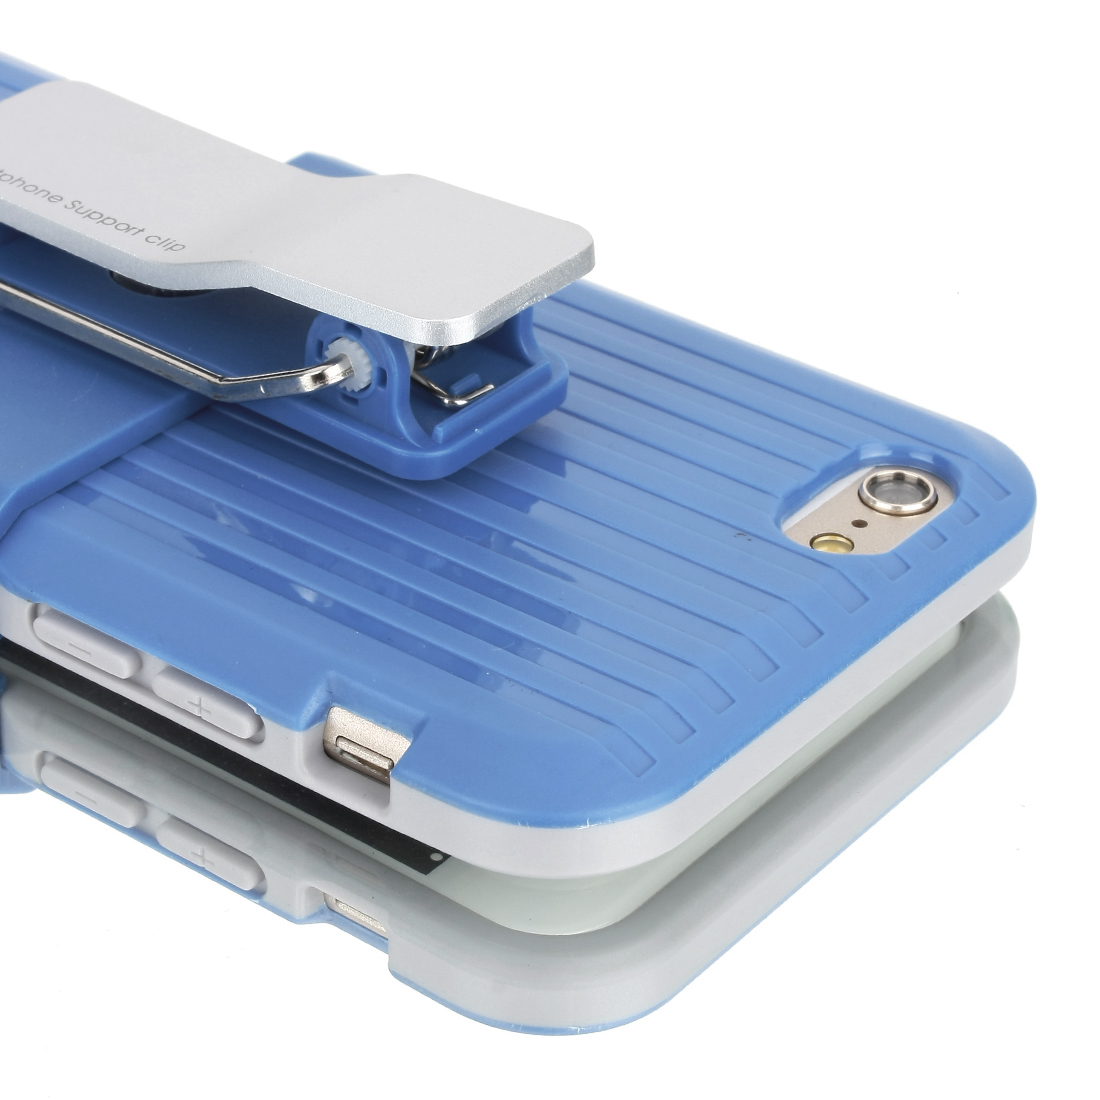 Rugged Hard Case Cover Belt Clip Holster Stand for Apple iPhone 6 4.7 inch Blue